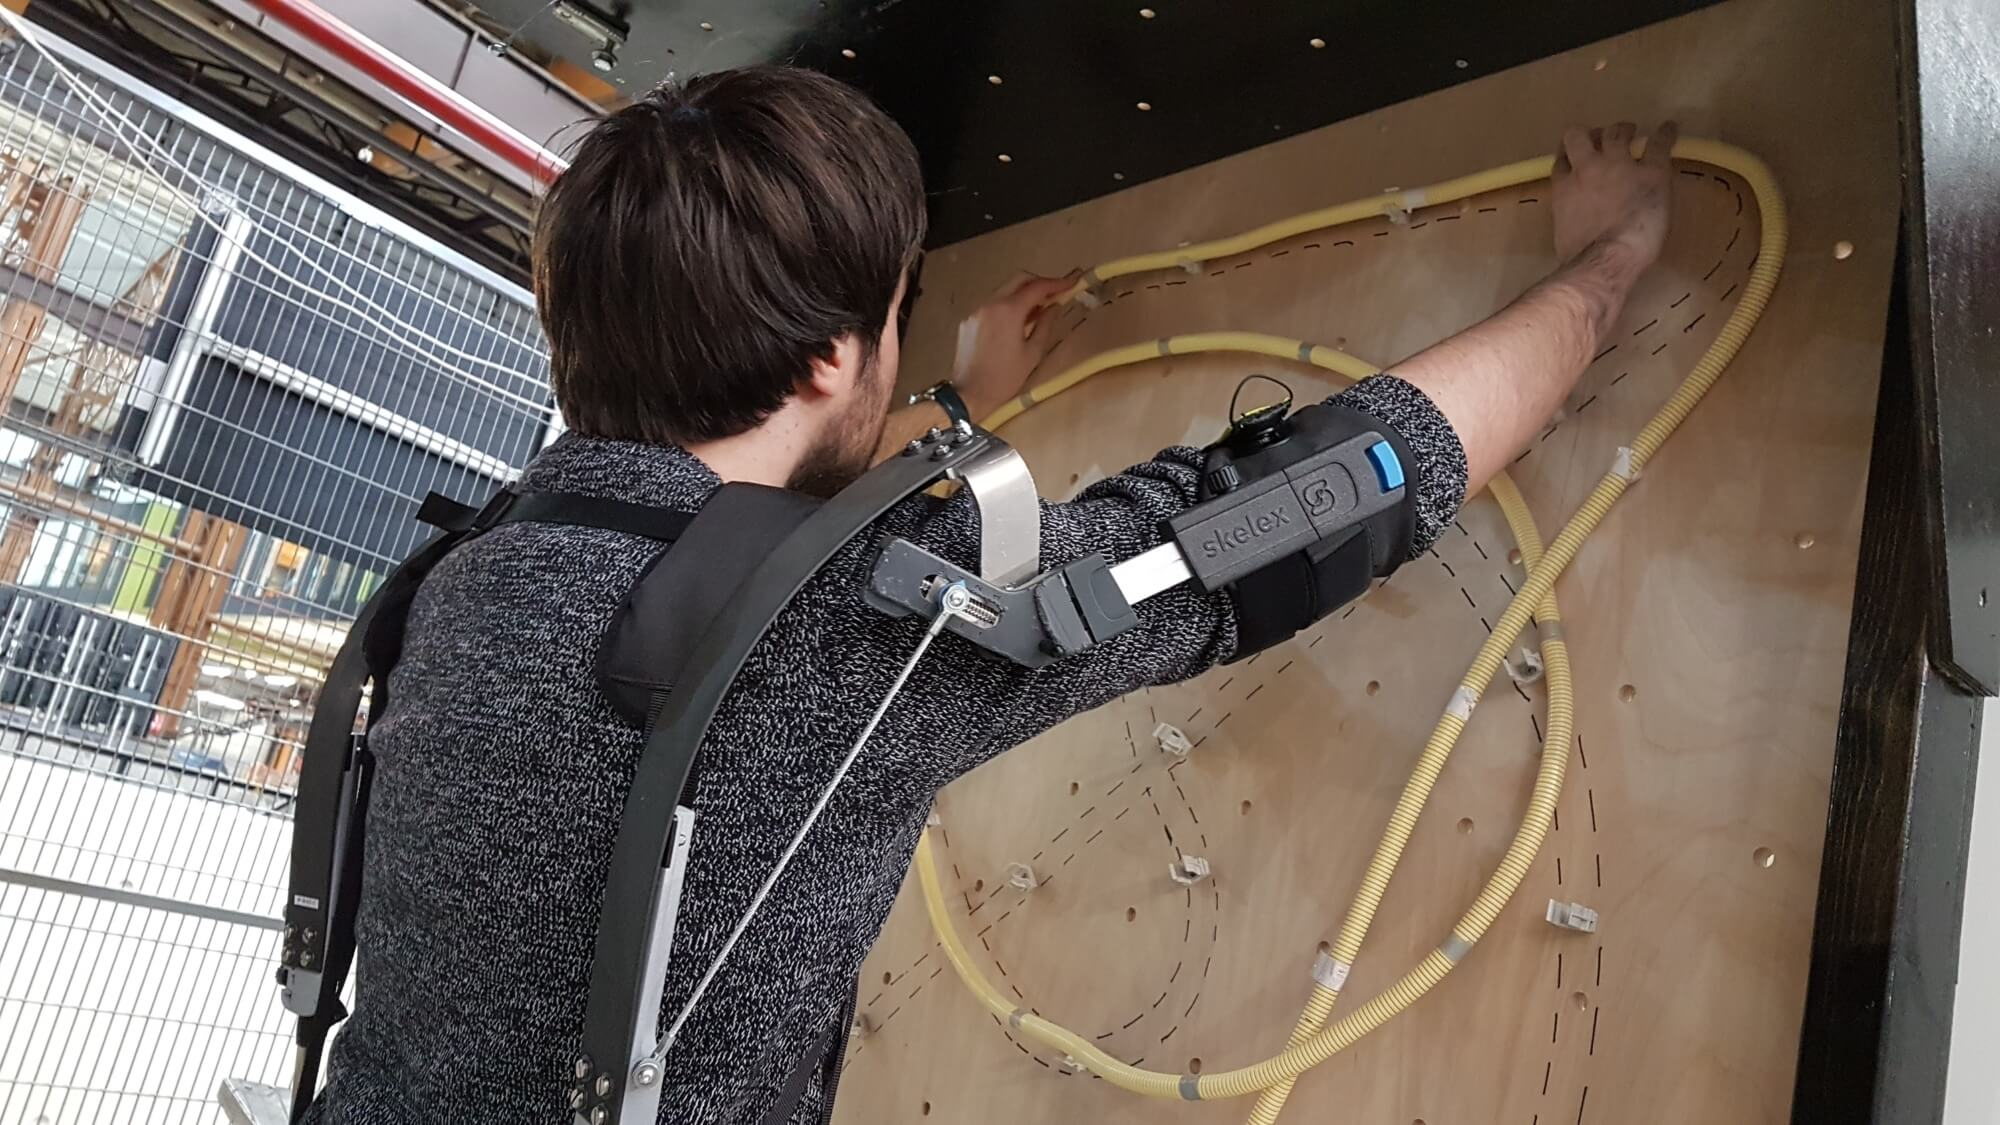 A demo of the Skelex exoskeleton in a situation with overhead motions.